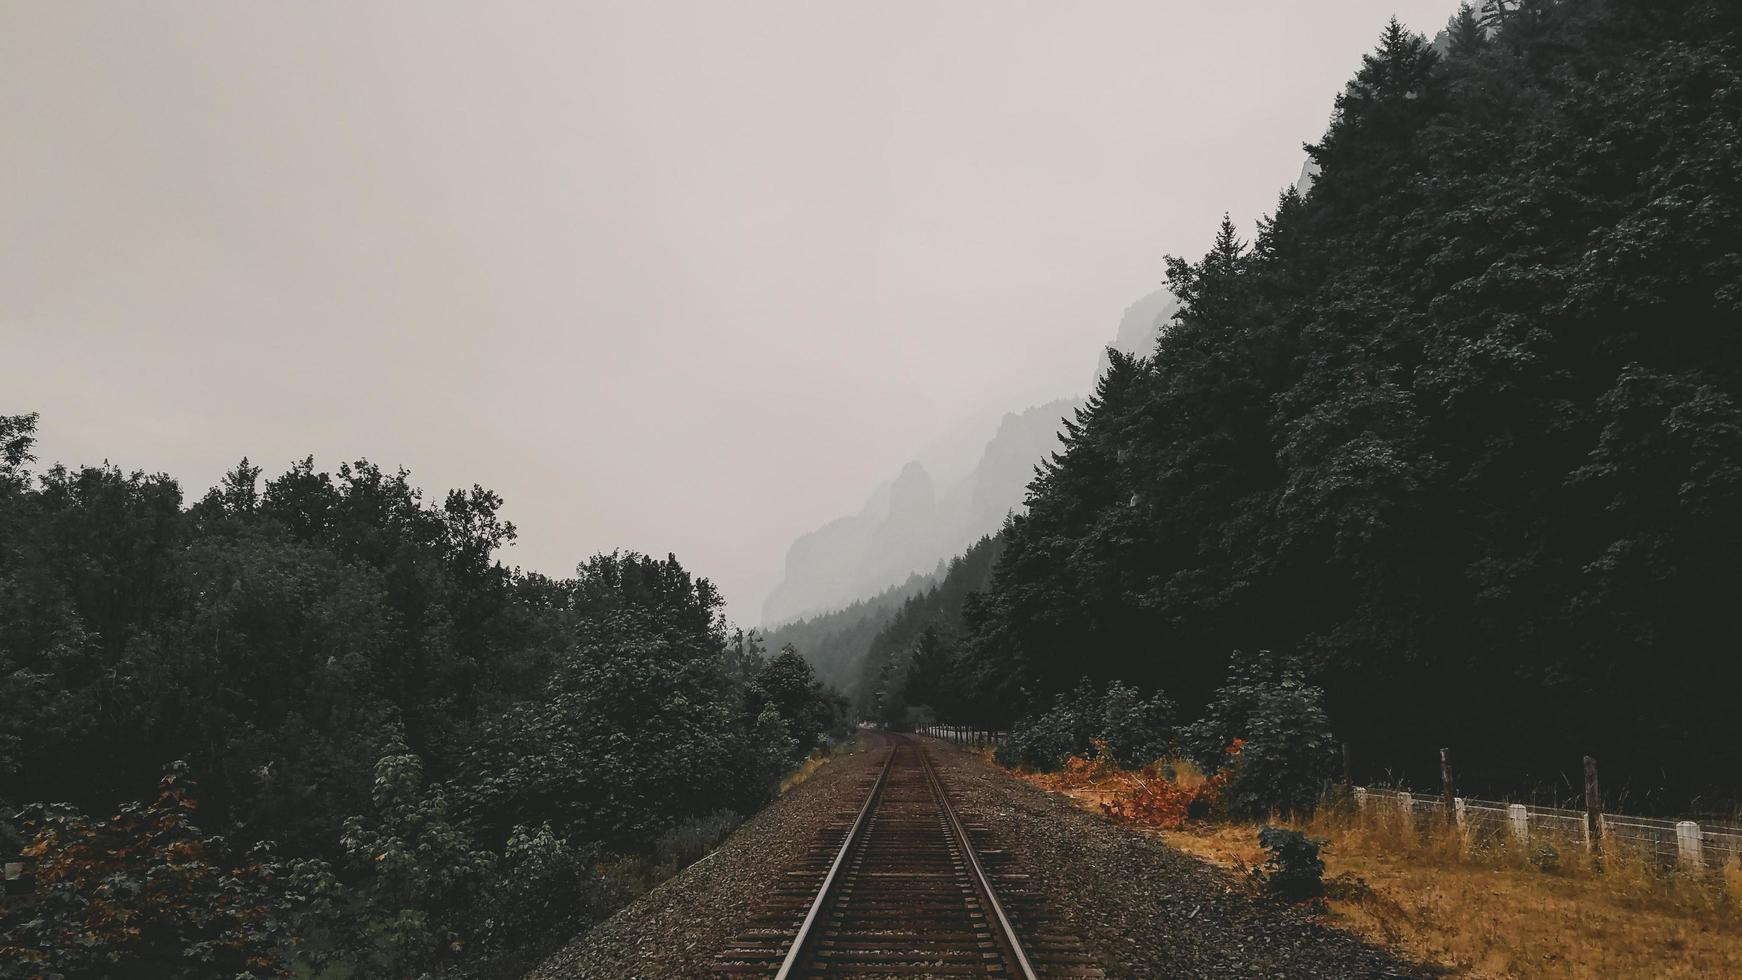 Rail road tracks with mountains in distance photo